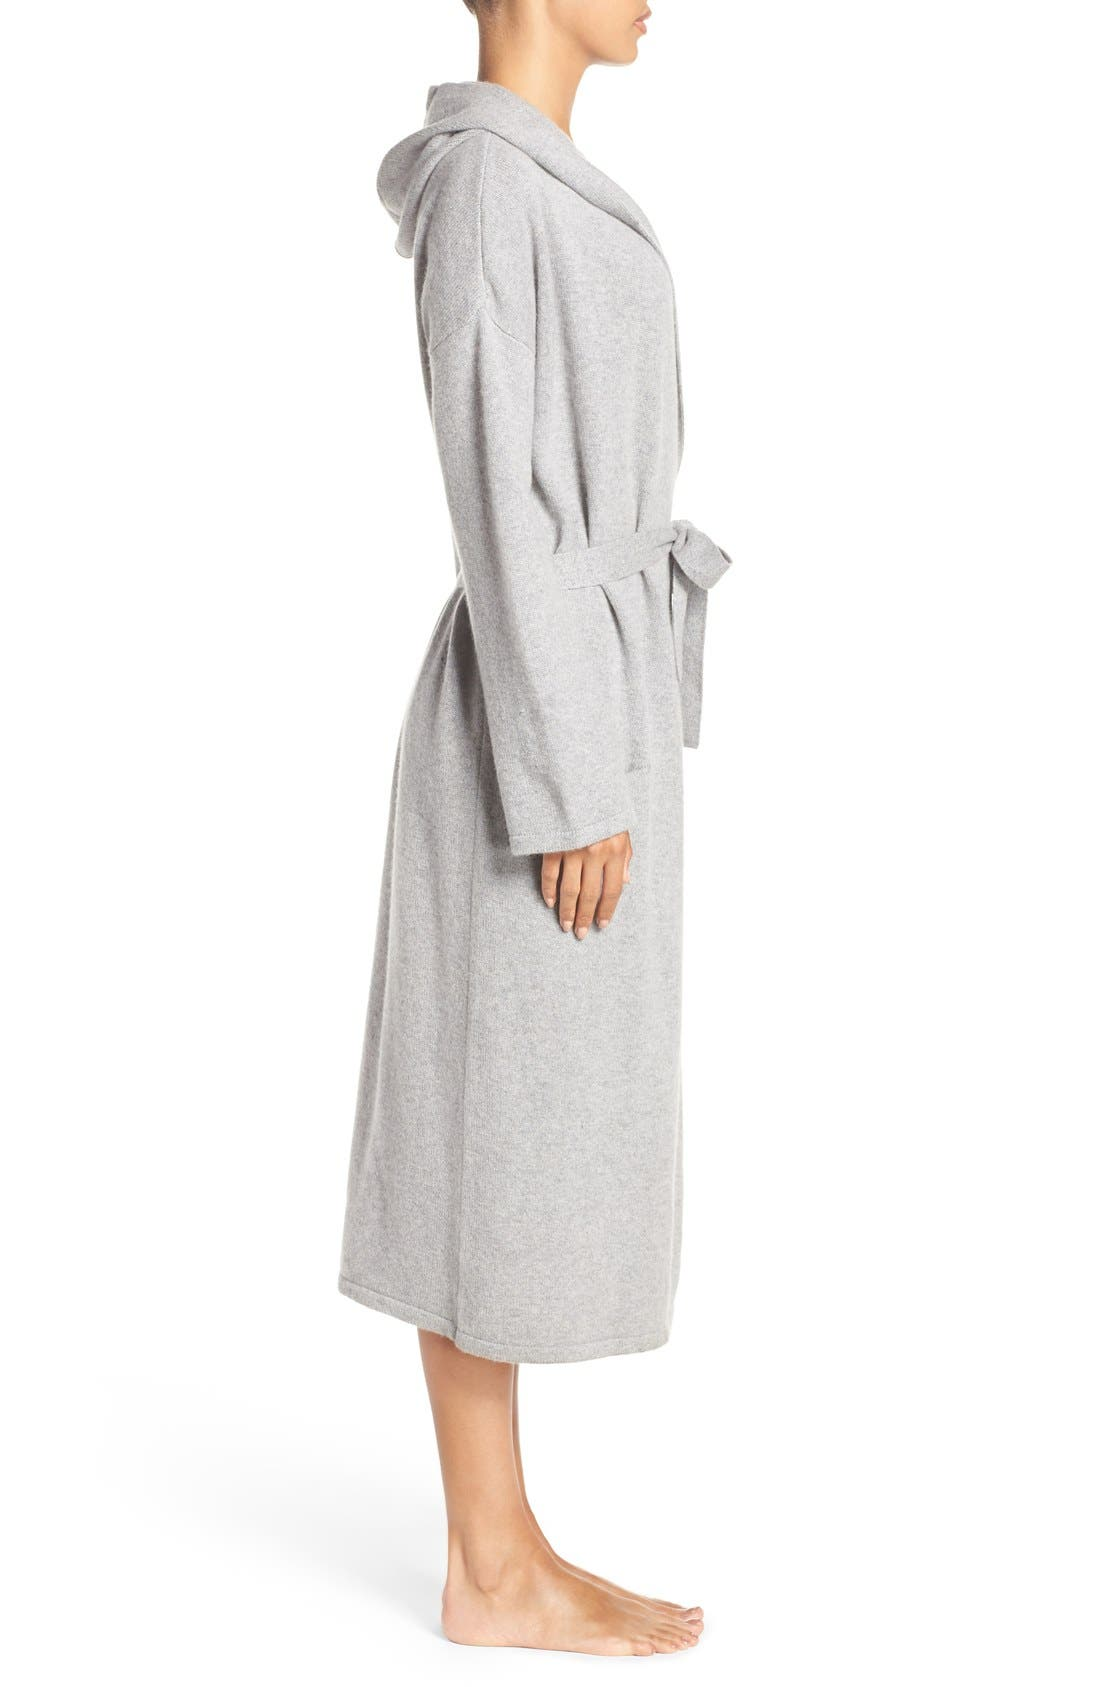 'Evie' Hooded Cashmere Robe,                             Alternate thumbnail 2, color,                             020